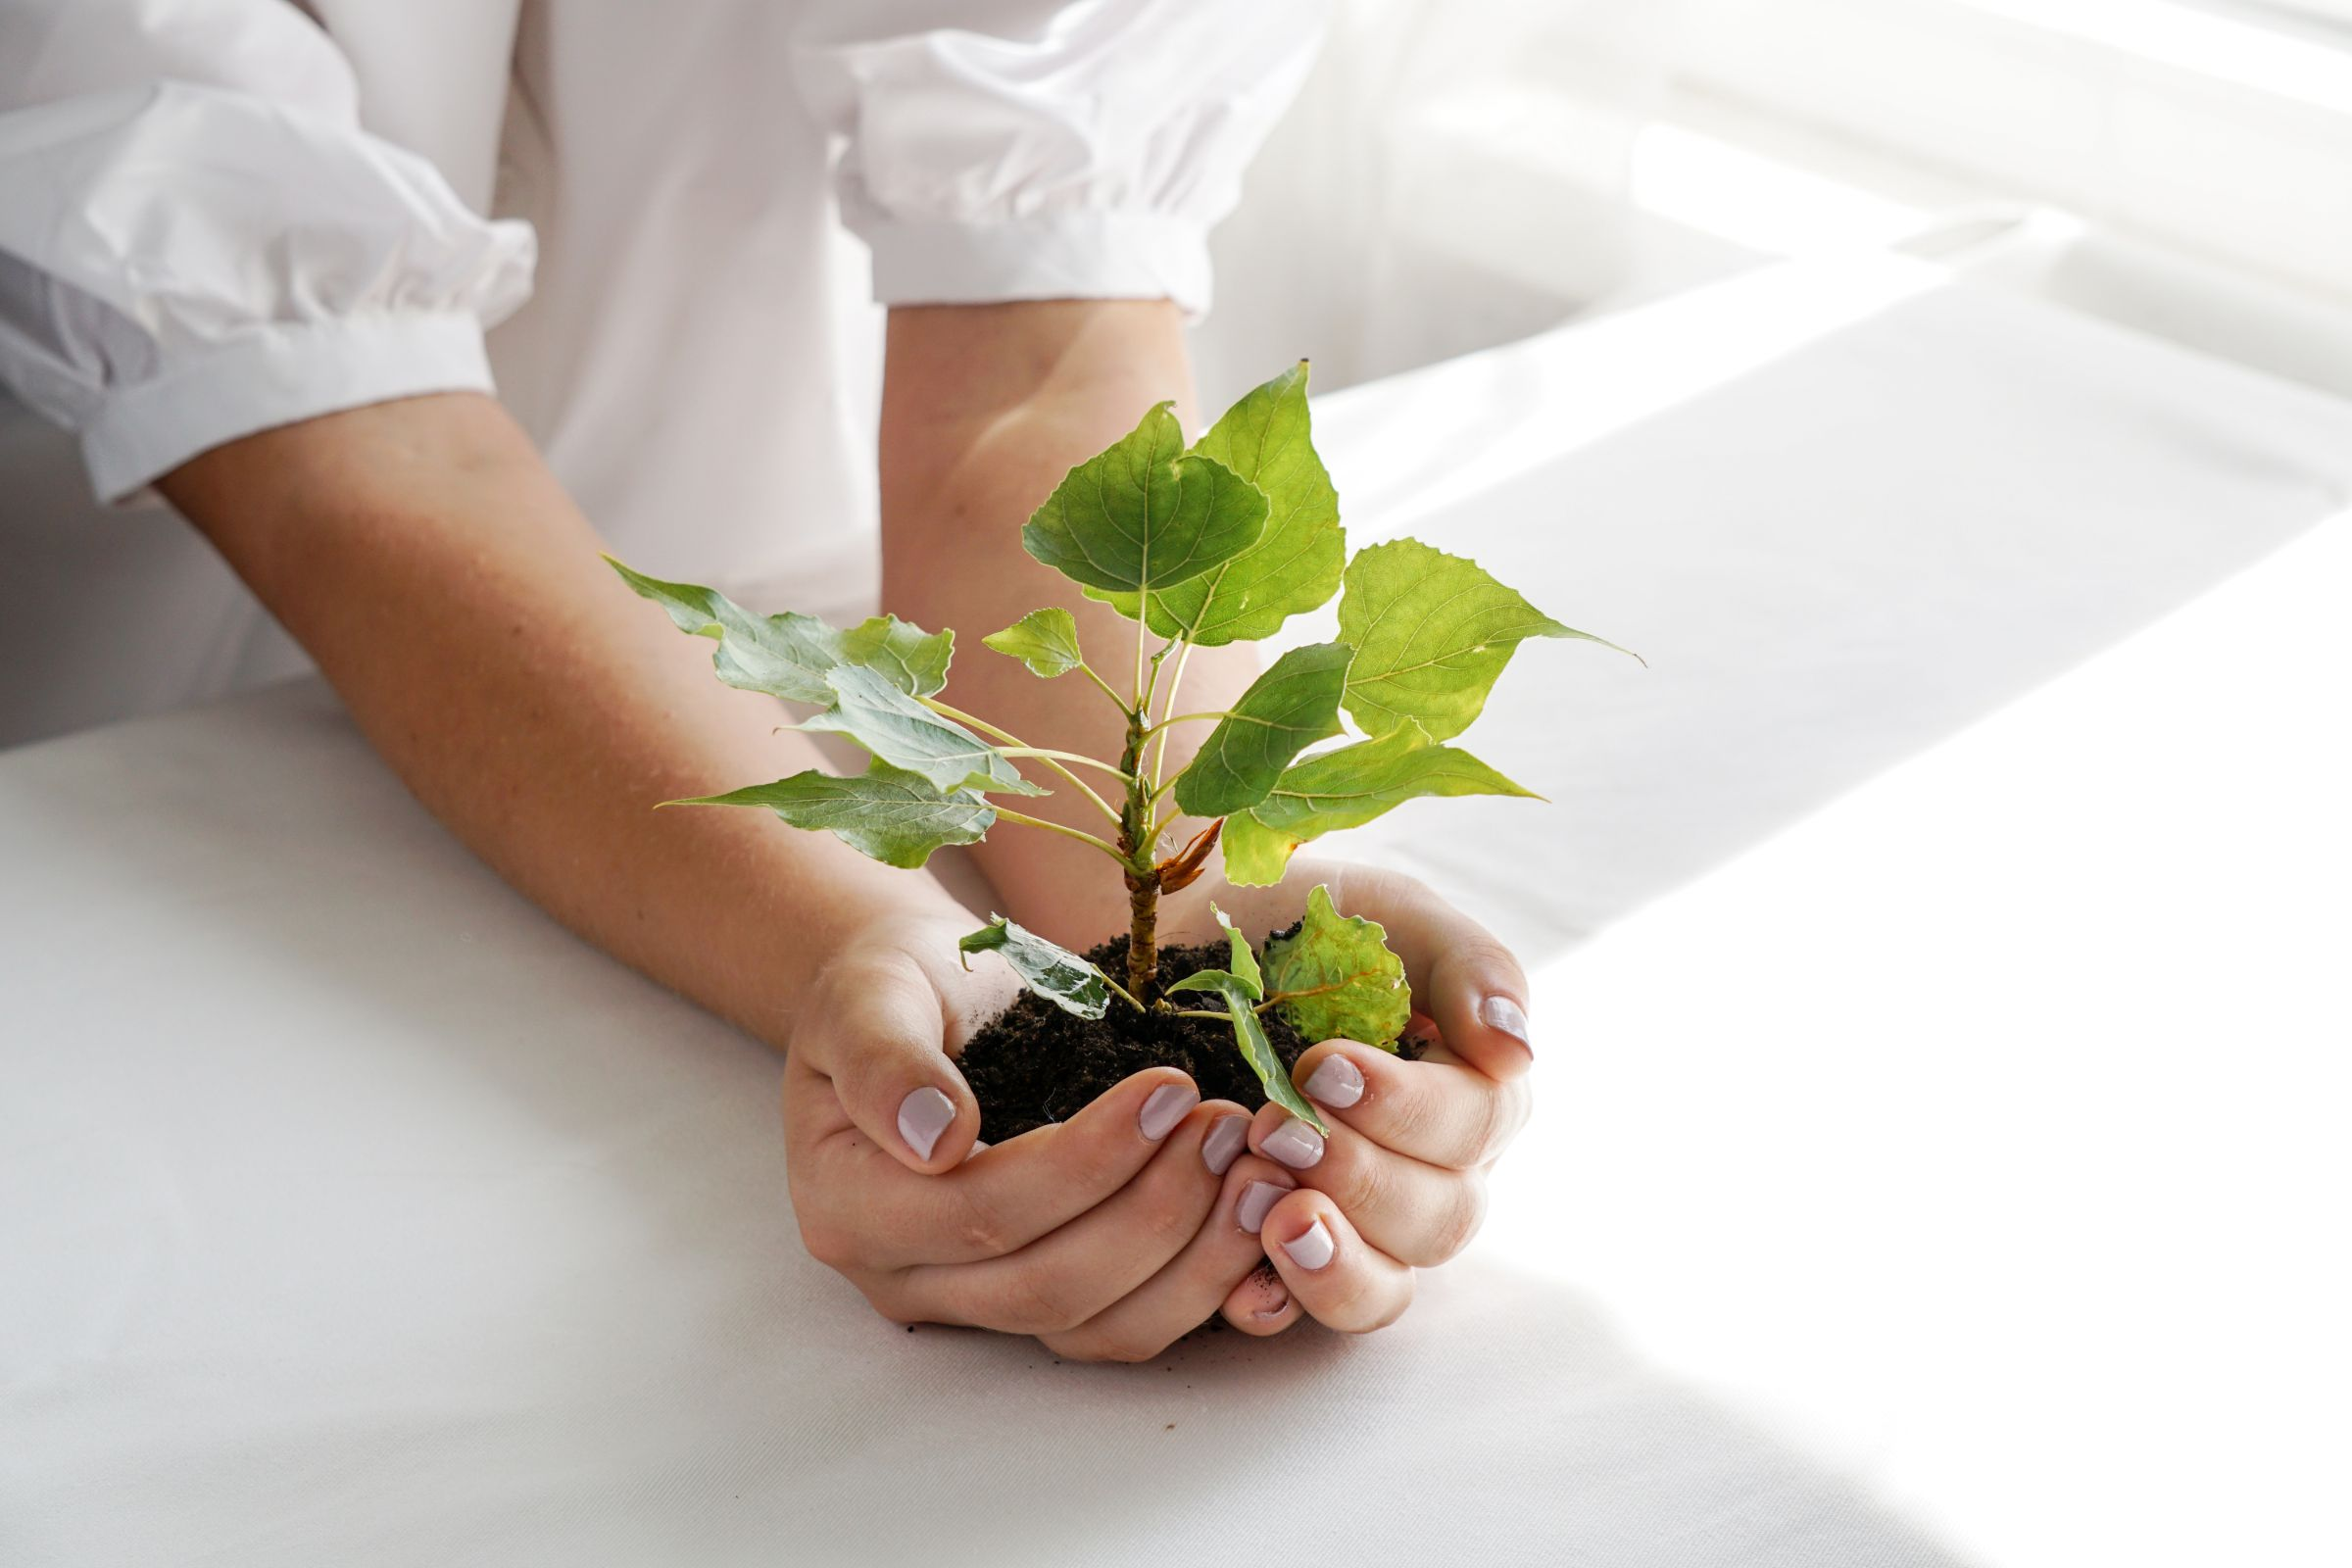 Woman Holding Green Plant Palm Her Hand Close Up Hand Holding Young Fresh Sprout Shallow Depth Field With Focus Seedling